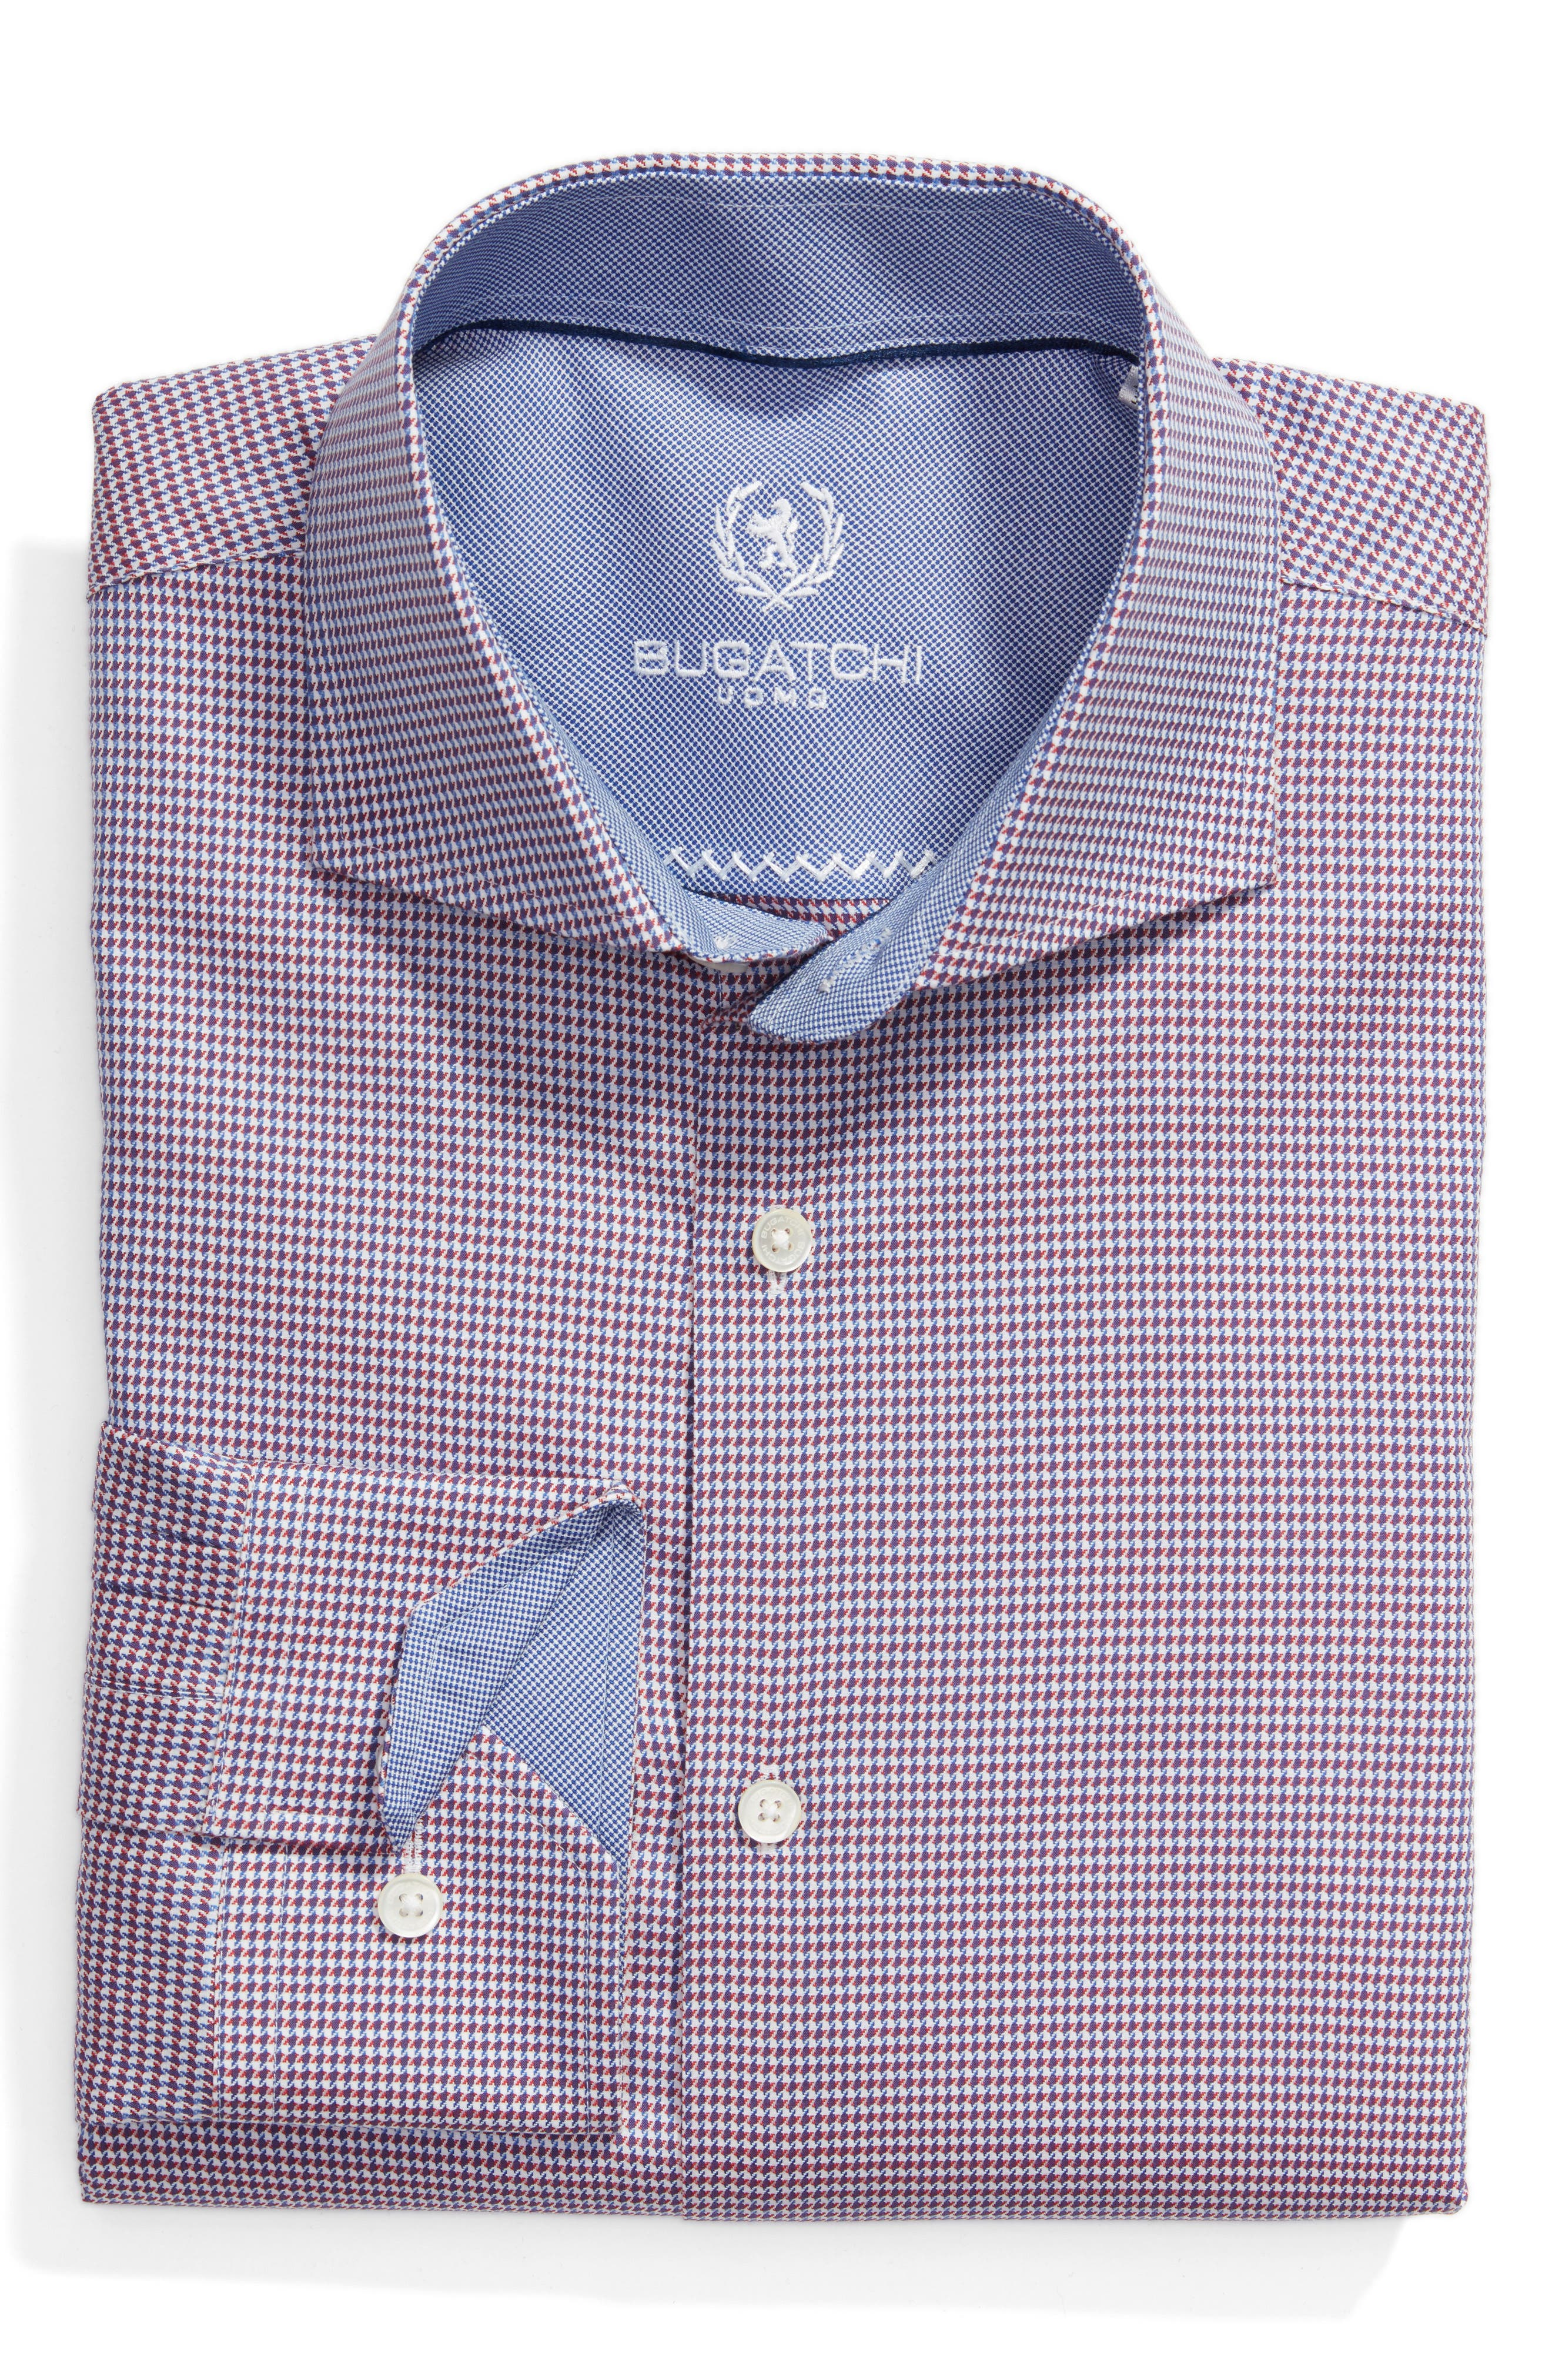 Trim Fit Houndstooth Dress Shirt,                             Main thumbnail 1, color,                             Ruby